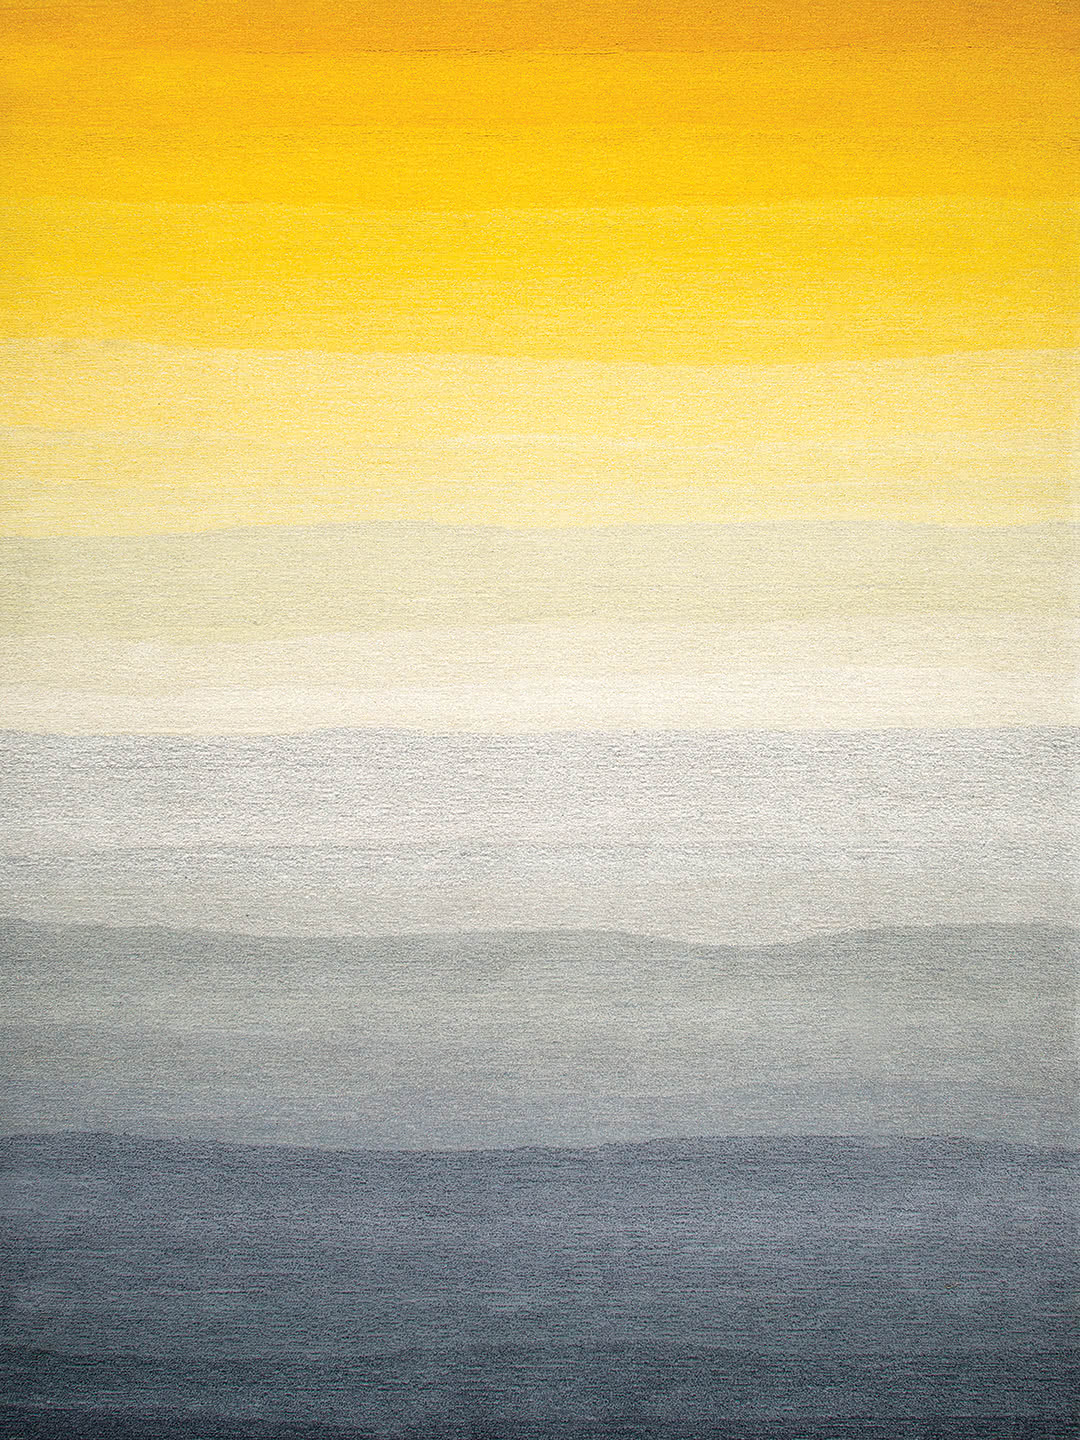 jamie-durie-rugs-stans-modern-wool-yellow-grey-ombre